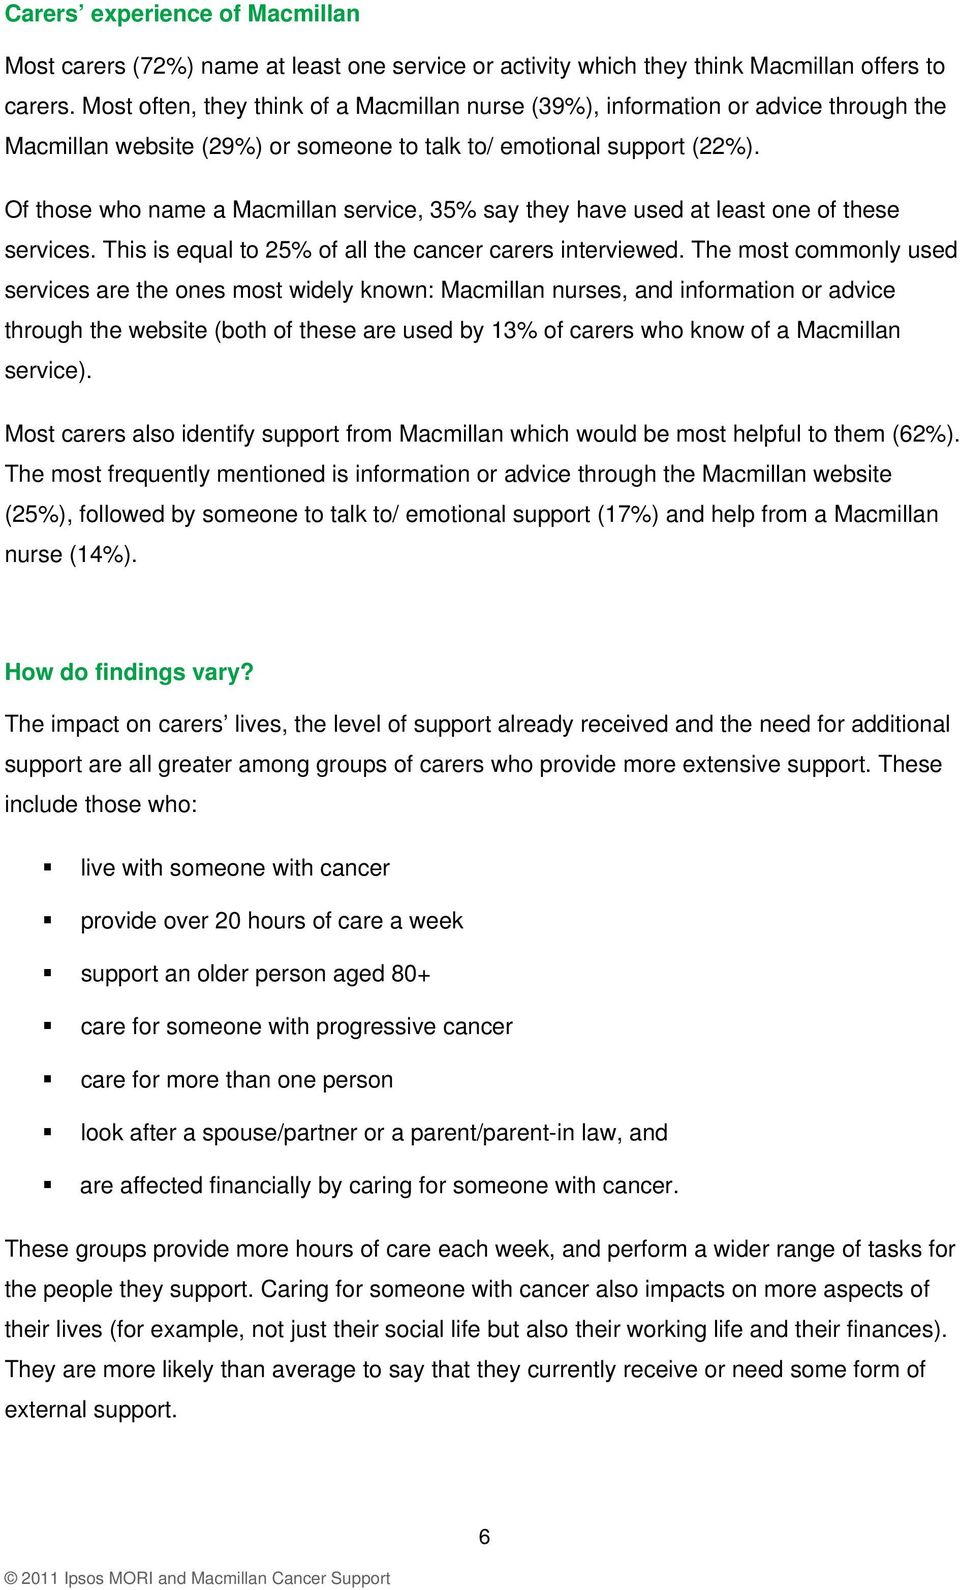 Of those who name a Macmillan service, 35% say they have used at least one of these services. This is equal to 25% of all the cancer carers interviewed.